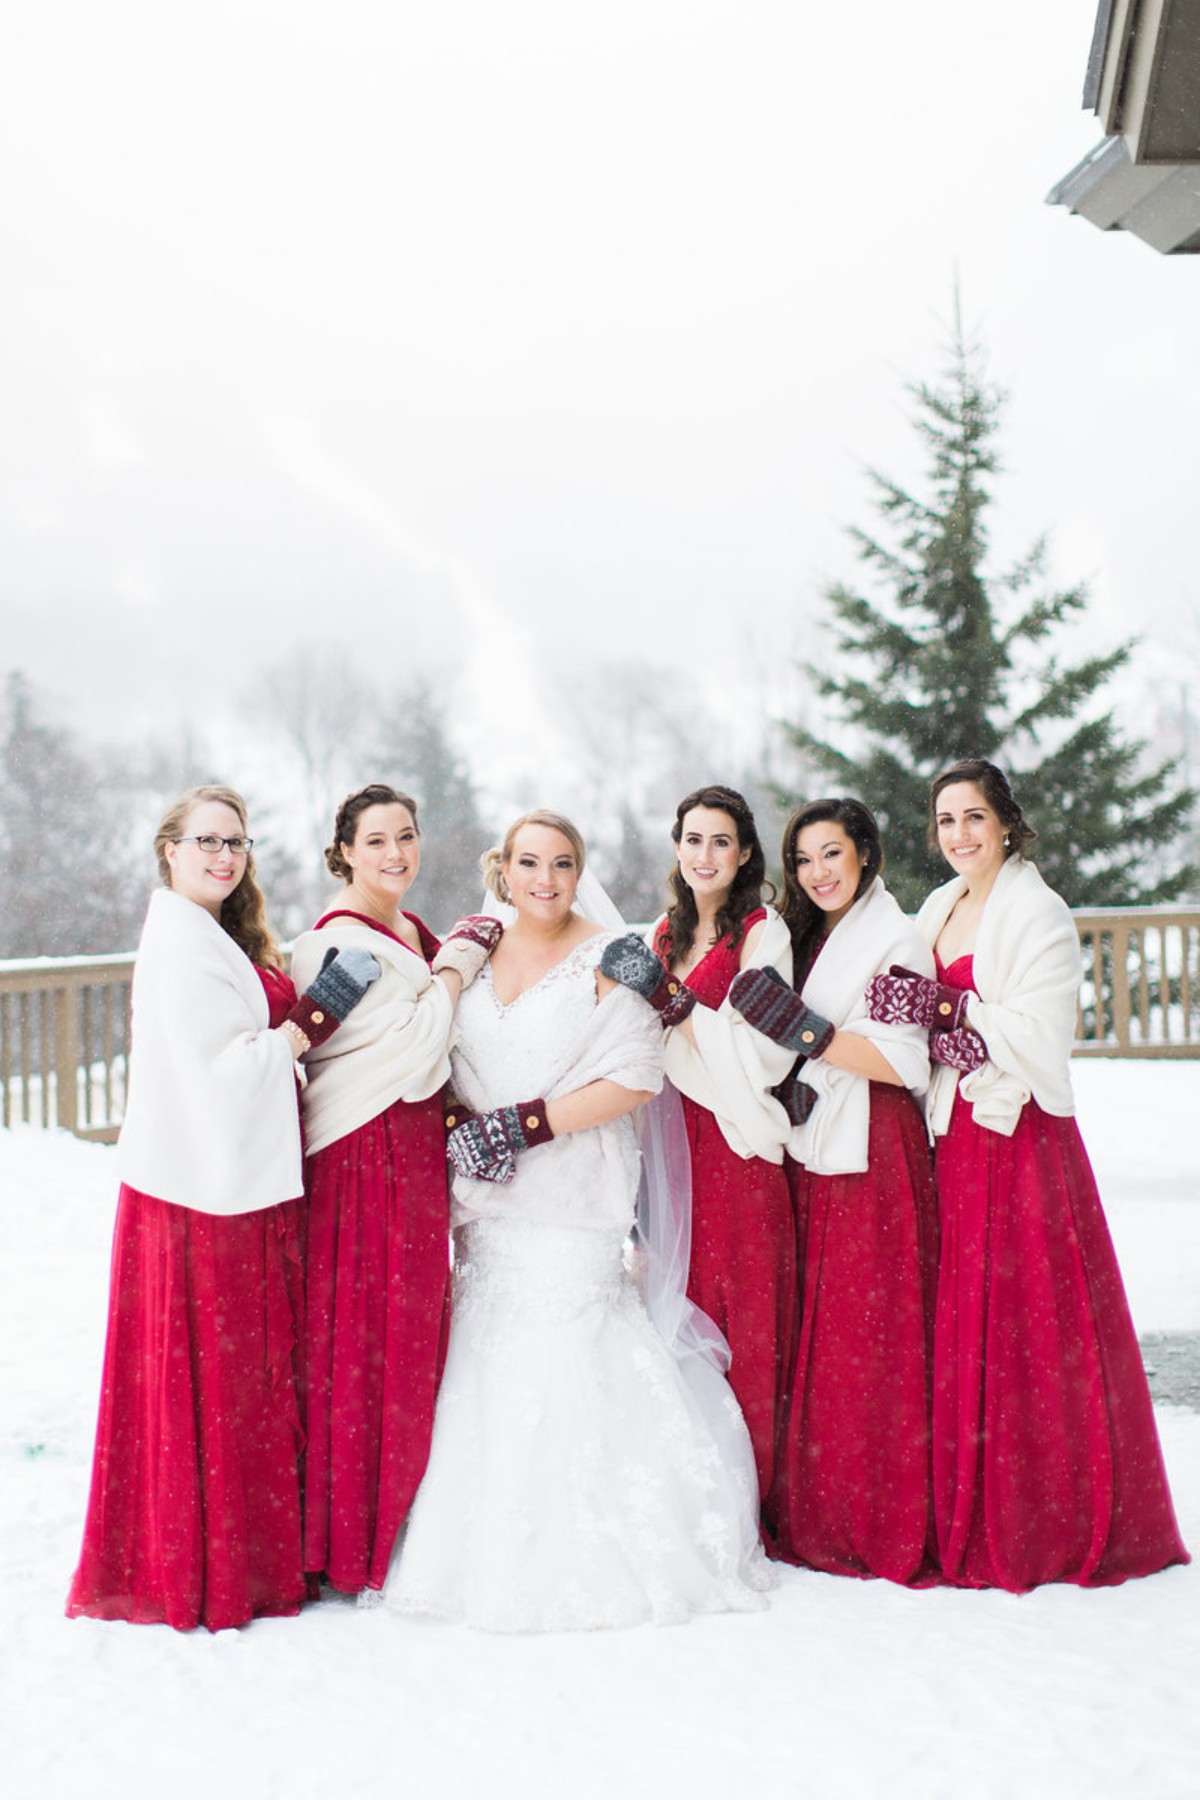 Winter bridesmaids with mittens